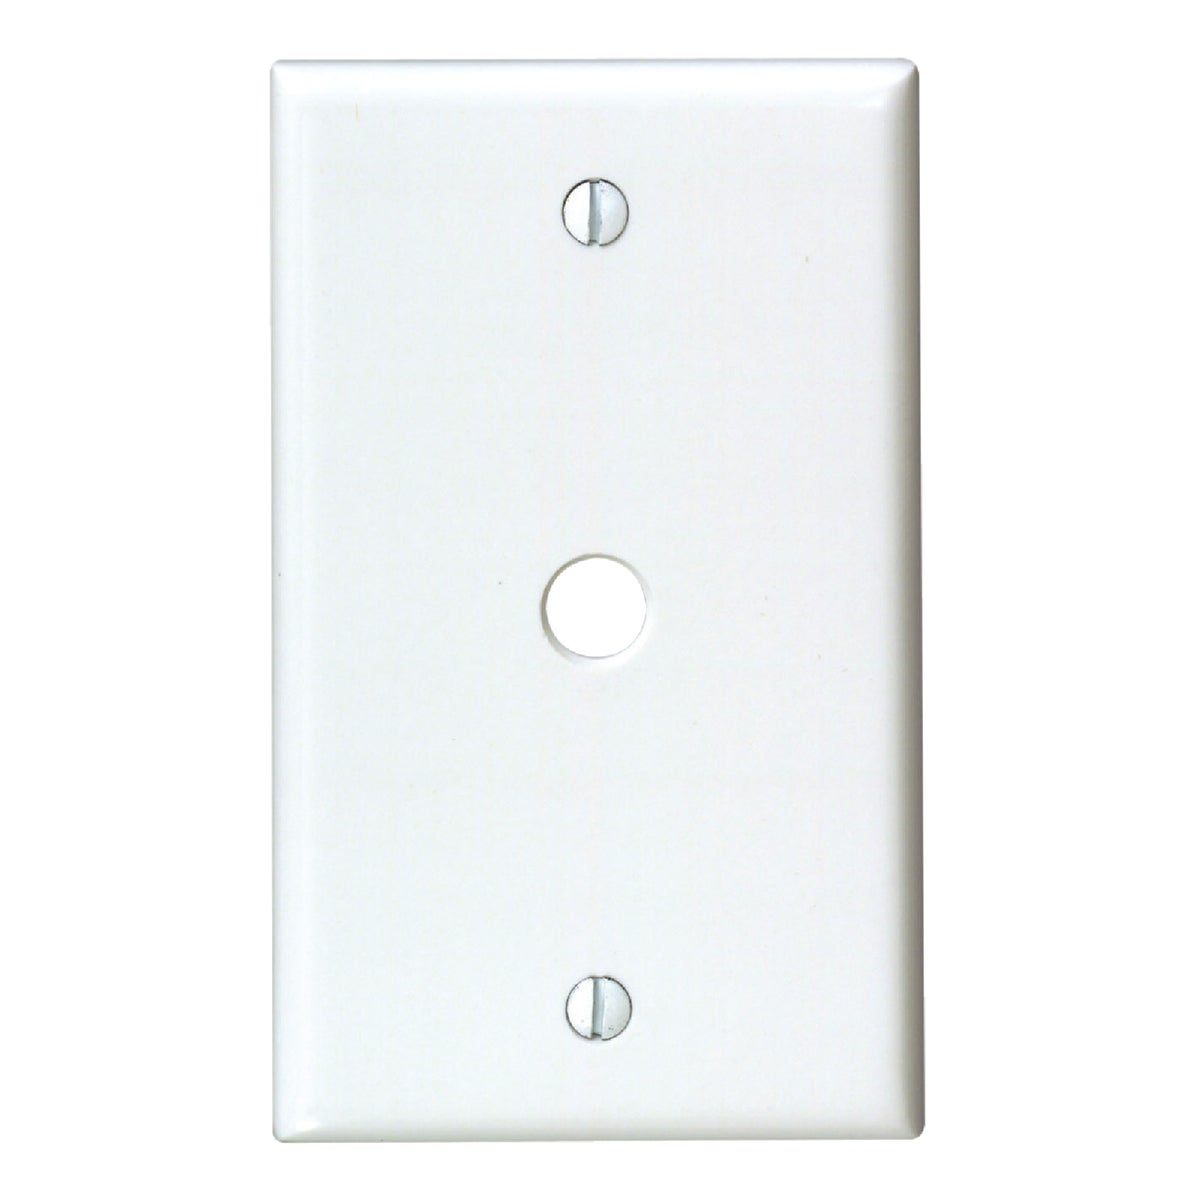 WHT PHONE WALL PLATE - 88013 by Leviton Mfg Co